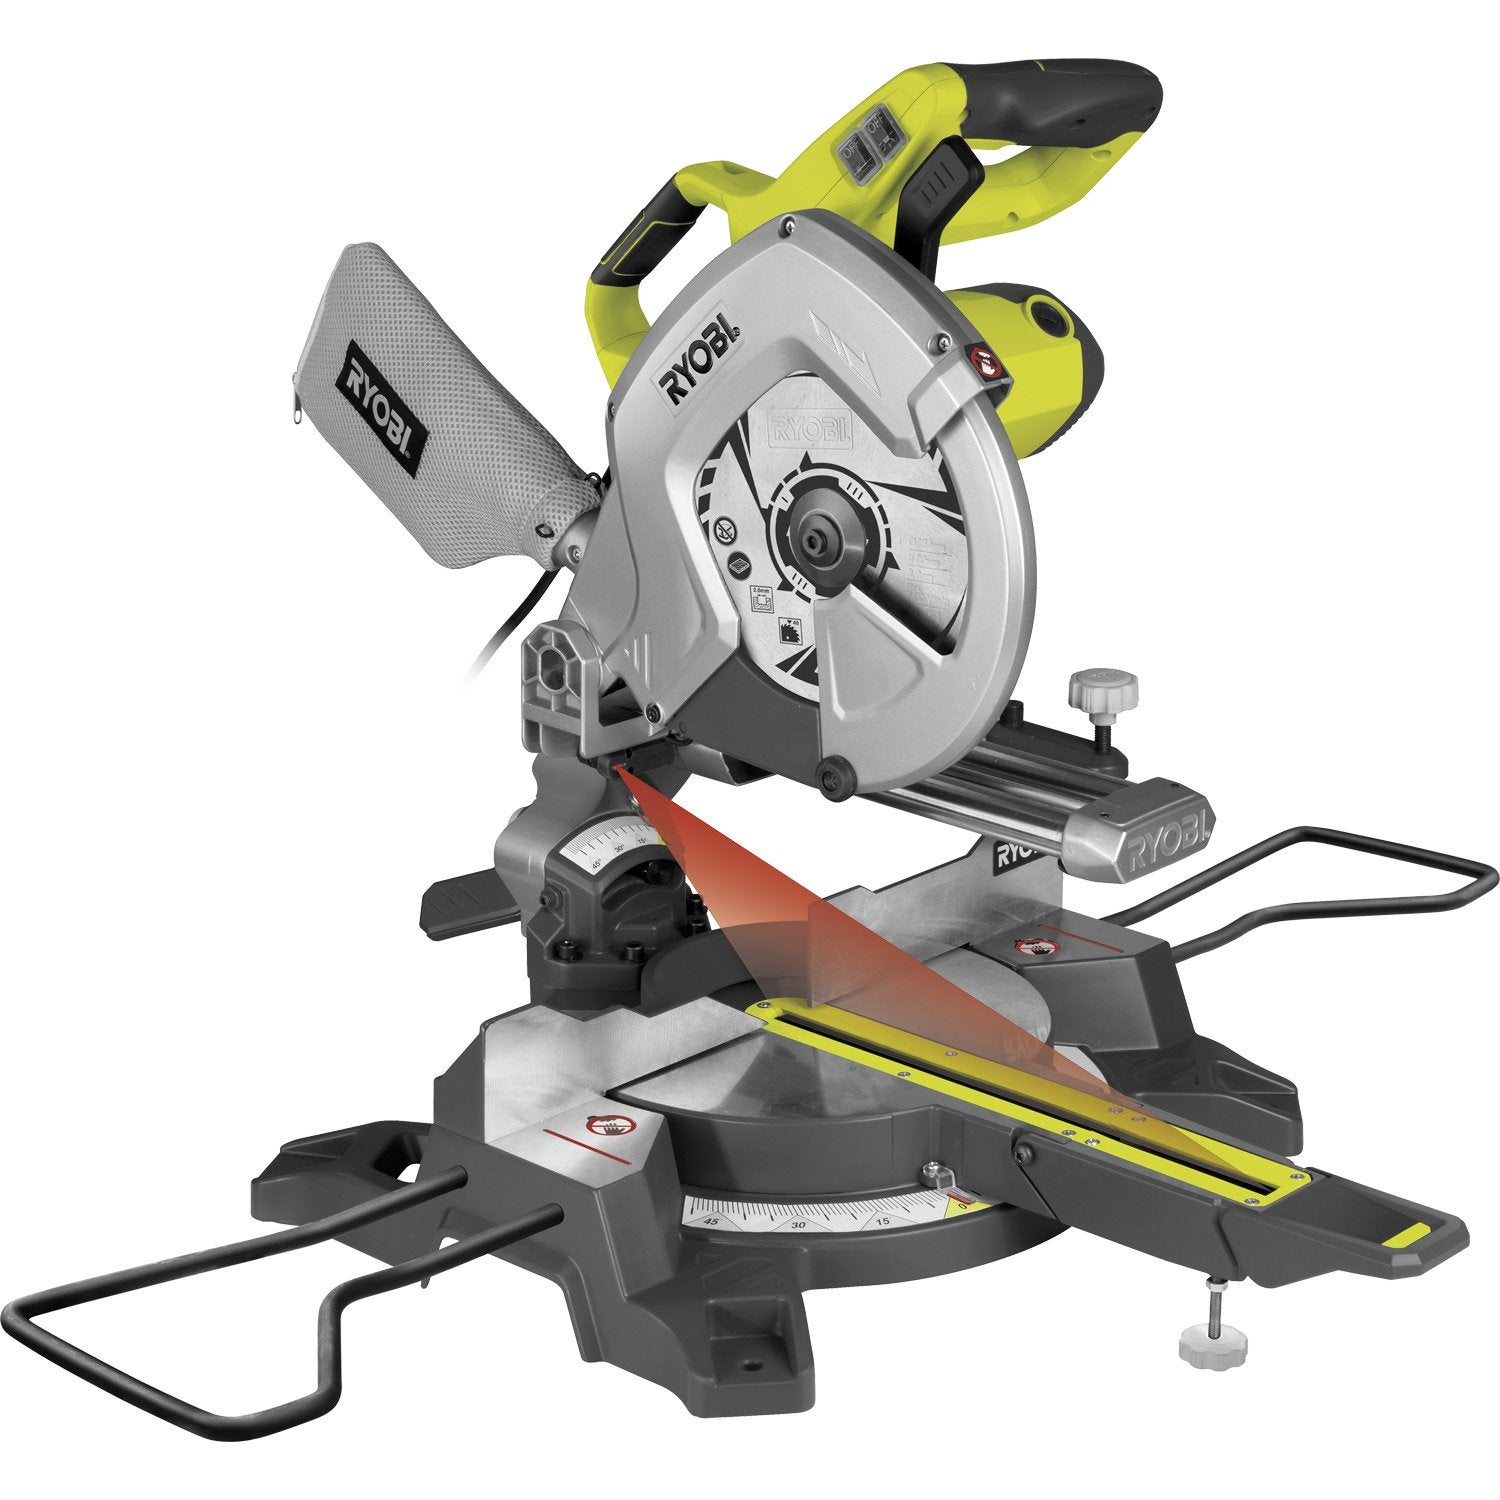 Scie onglet ryobi ems254l 254 mm 2000 w leroy merlin - Scie circulaire carrelage ...